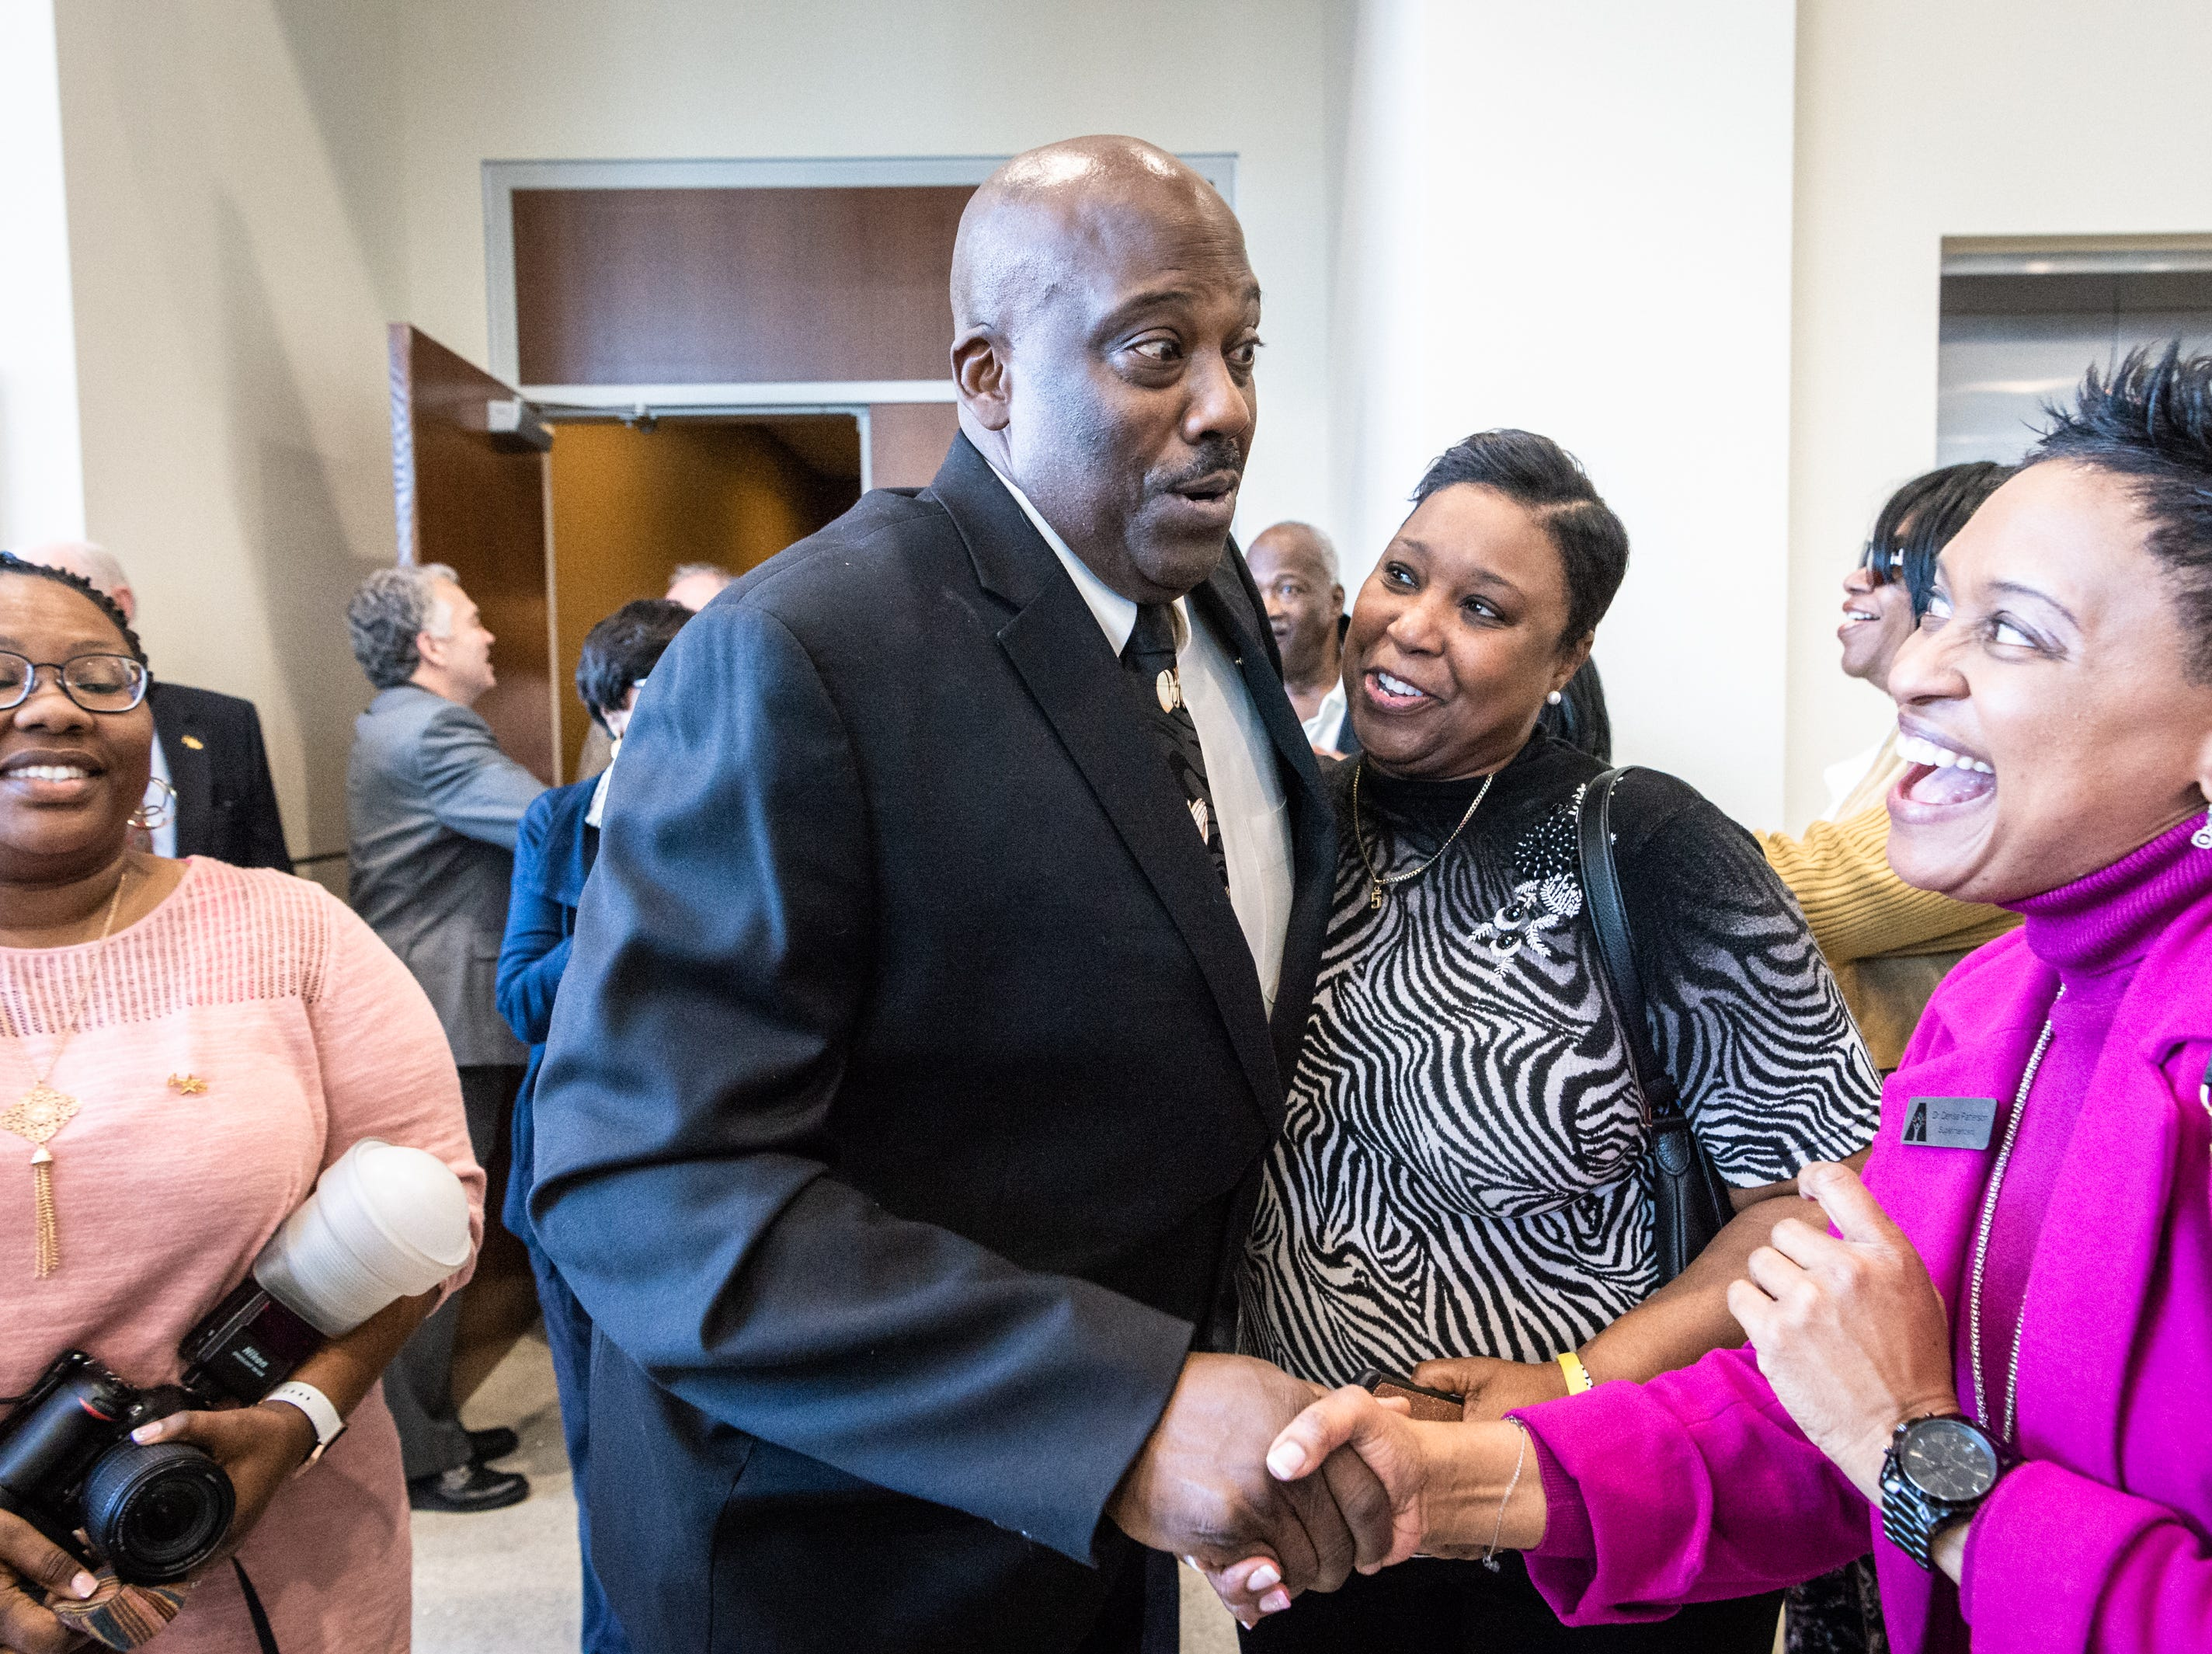 Quentin Miller, the new Buncombe County Sheriff greets friends, family and supporters after leaving the courtroom at the Buncombe County Courthouse after his swearing-in ceremony Dec. 3, 2018, making him the first African-American Buncombe County sheriff.